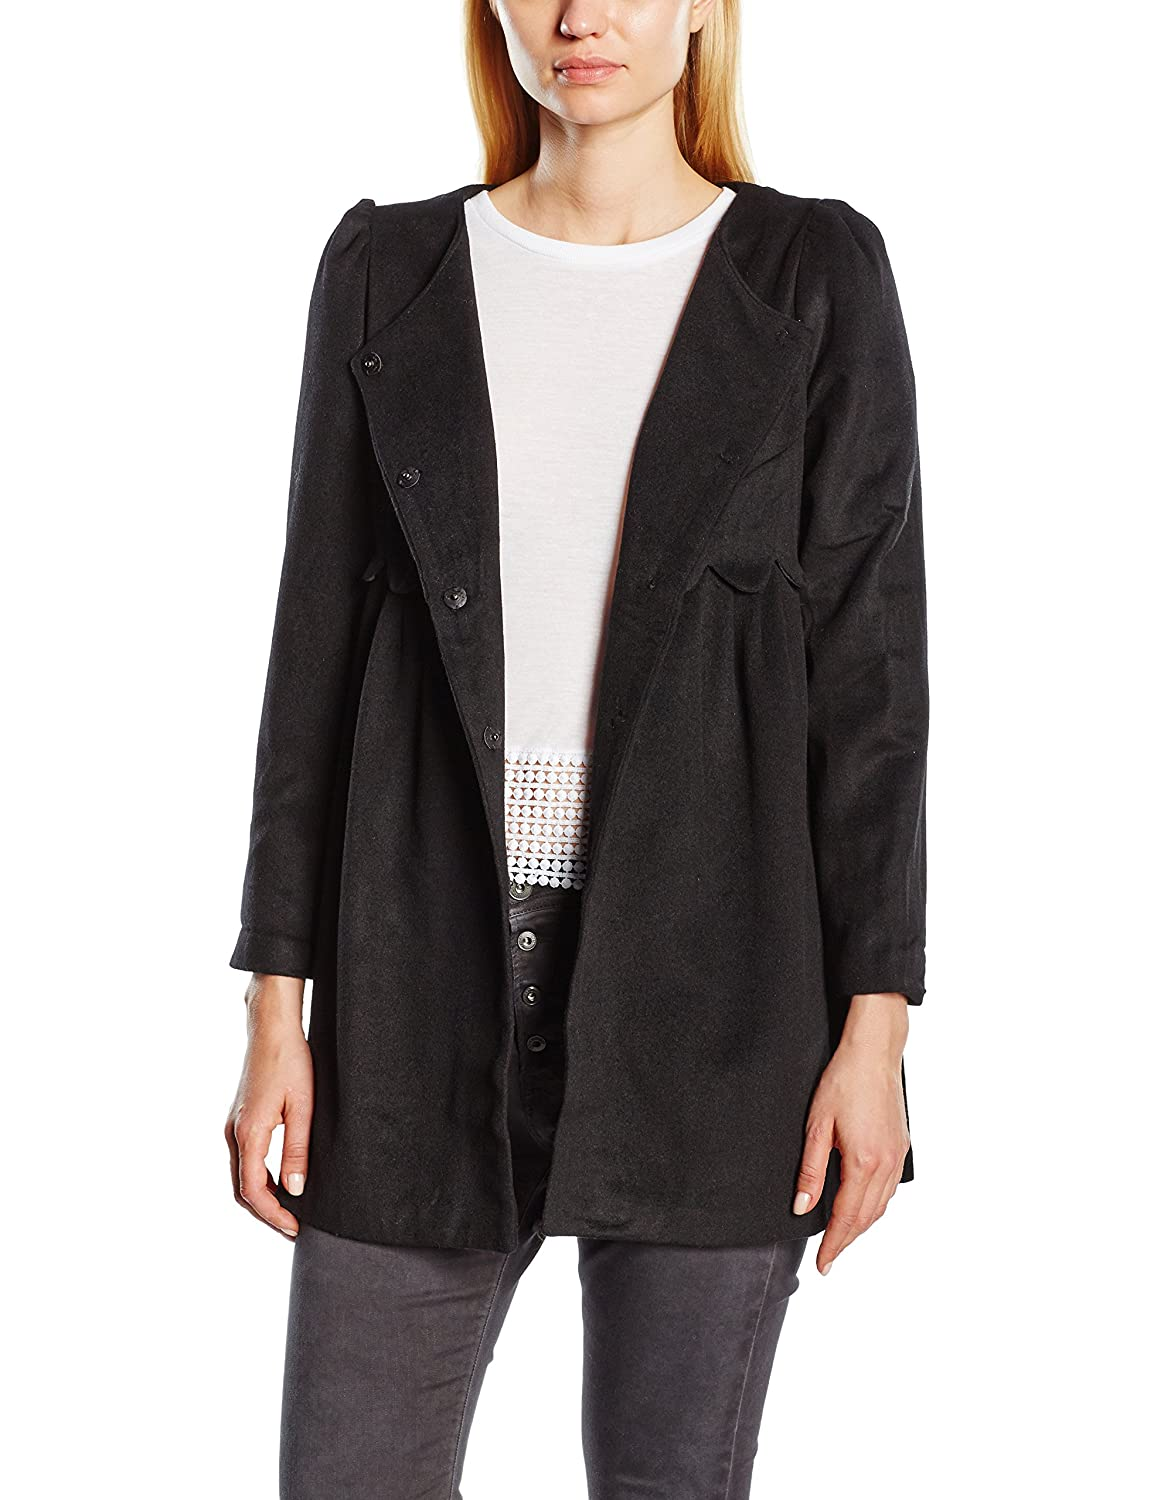 Molly Bracken Damen, Mantel, STAR Manteau et col